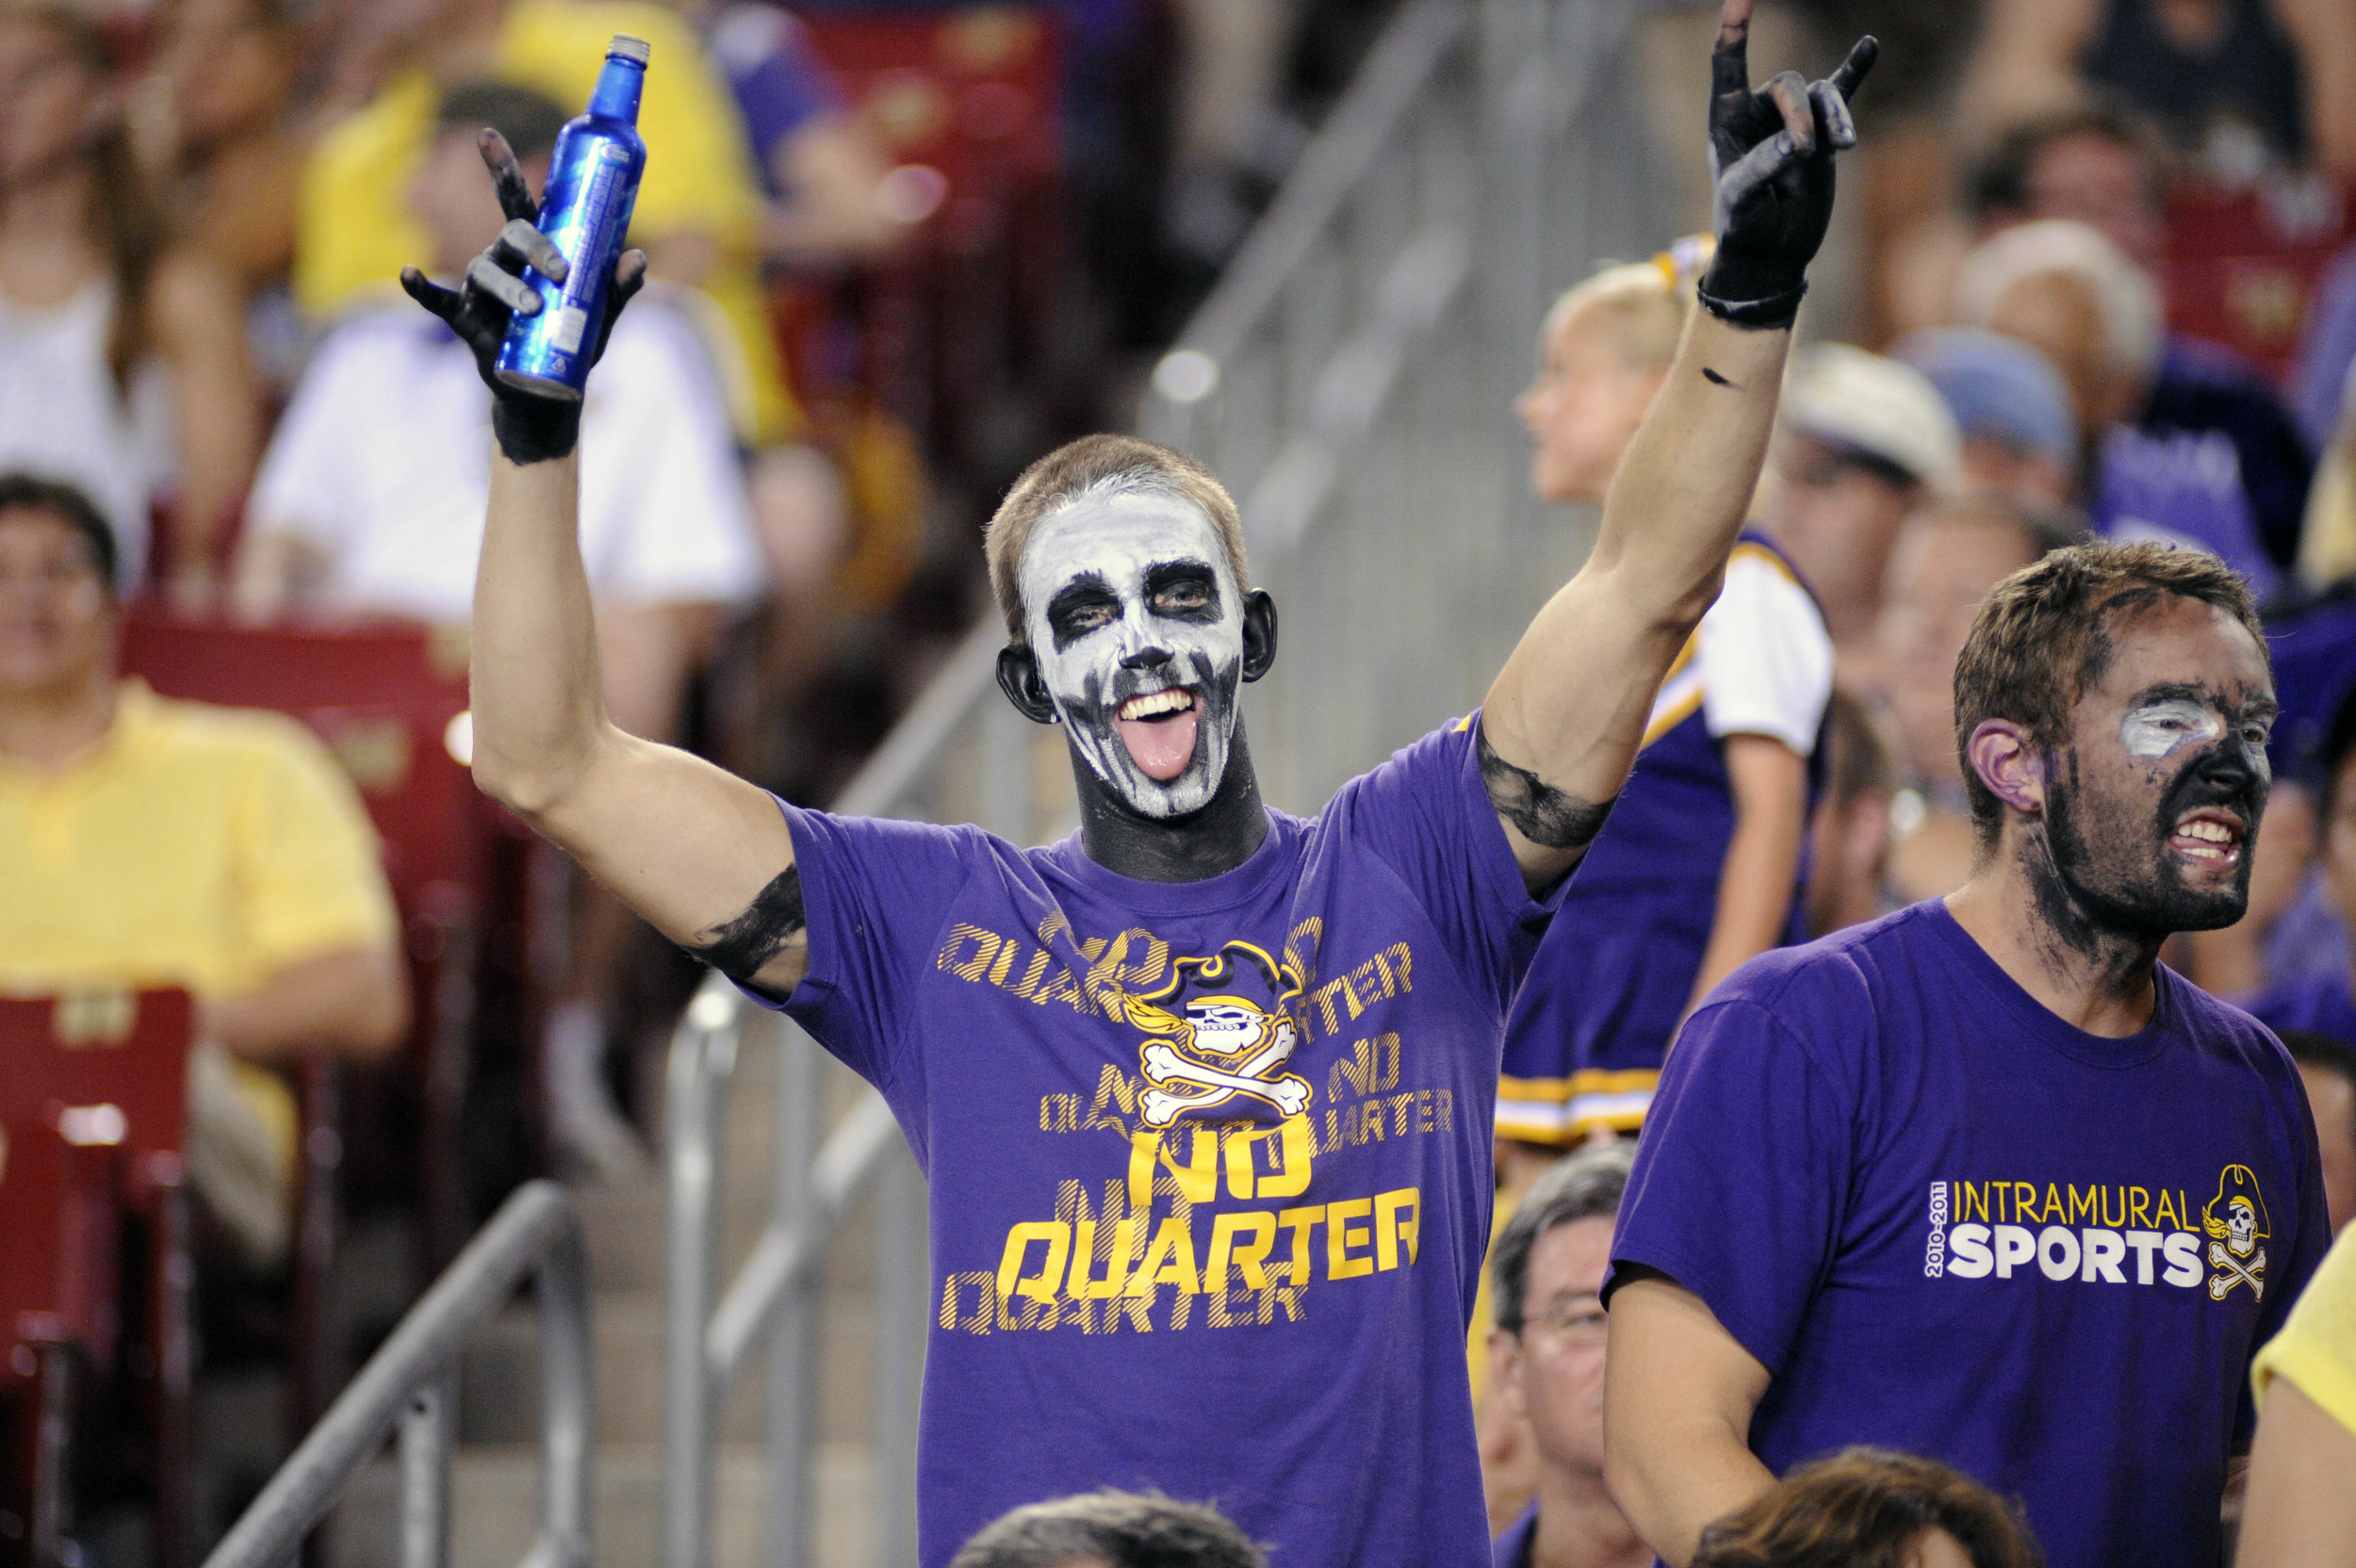 I don't know what's lamer, the facepaint or the Bud Light Platinum... okay, it's the Platinum.